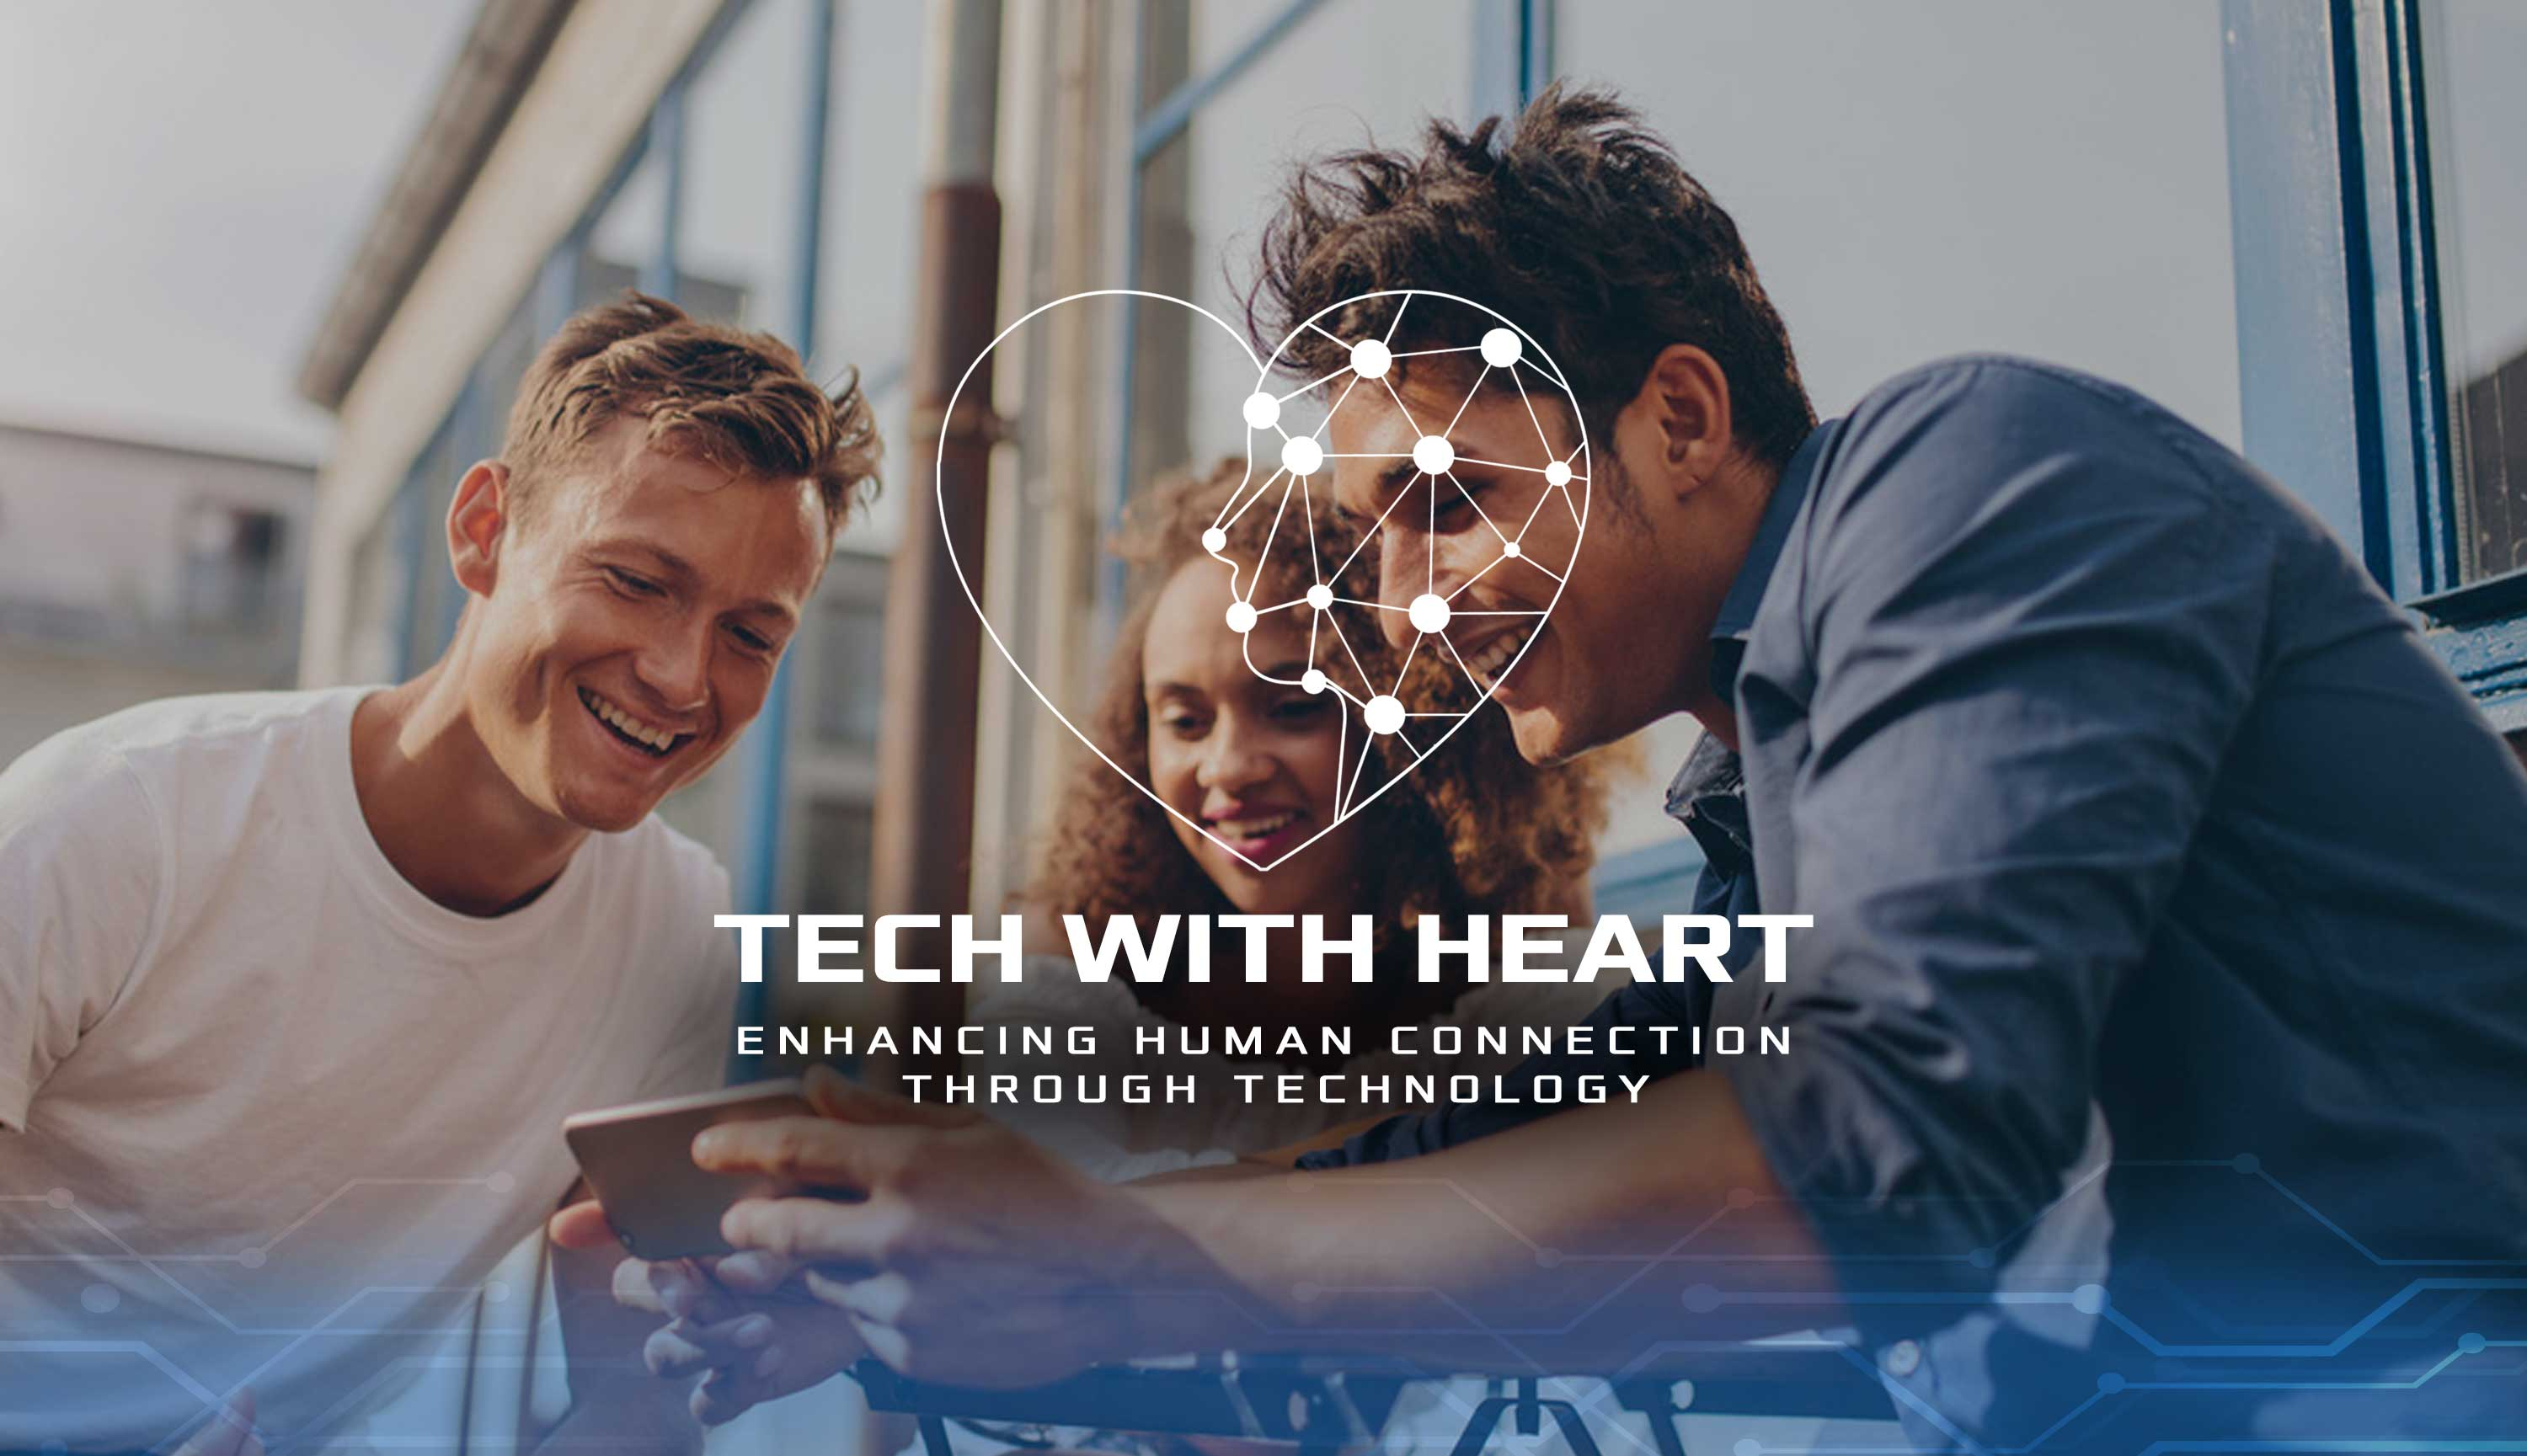 tech with heart network